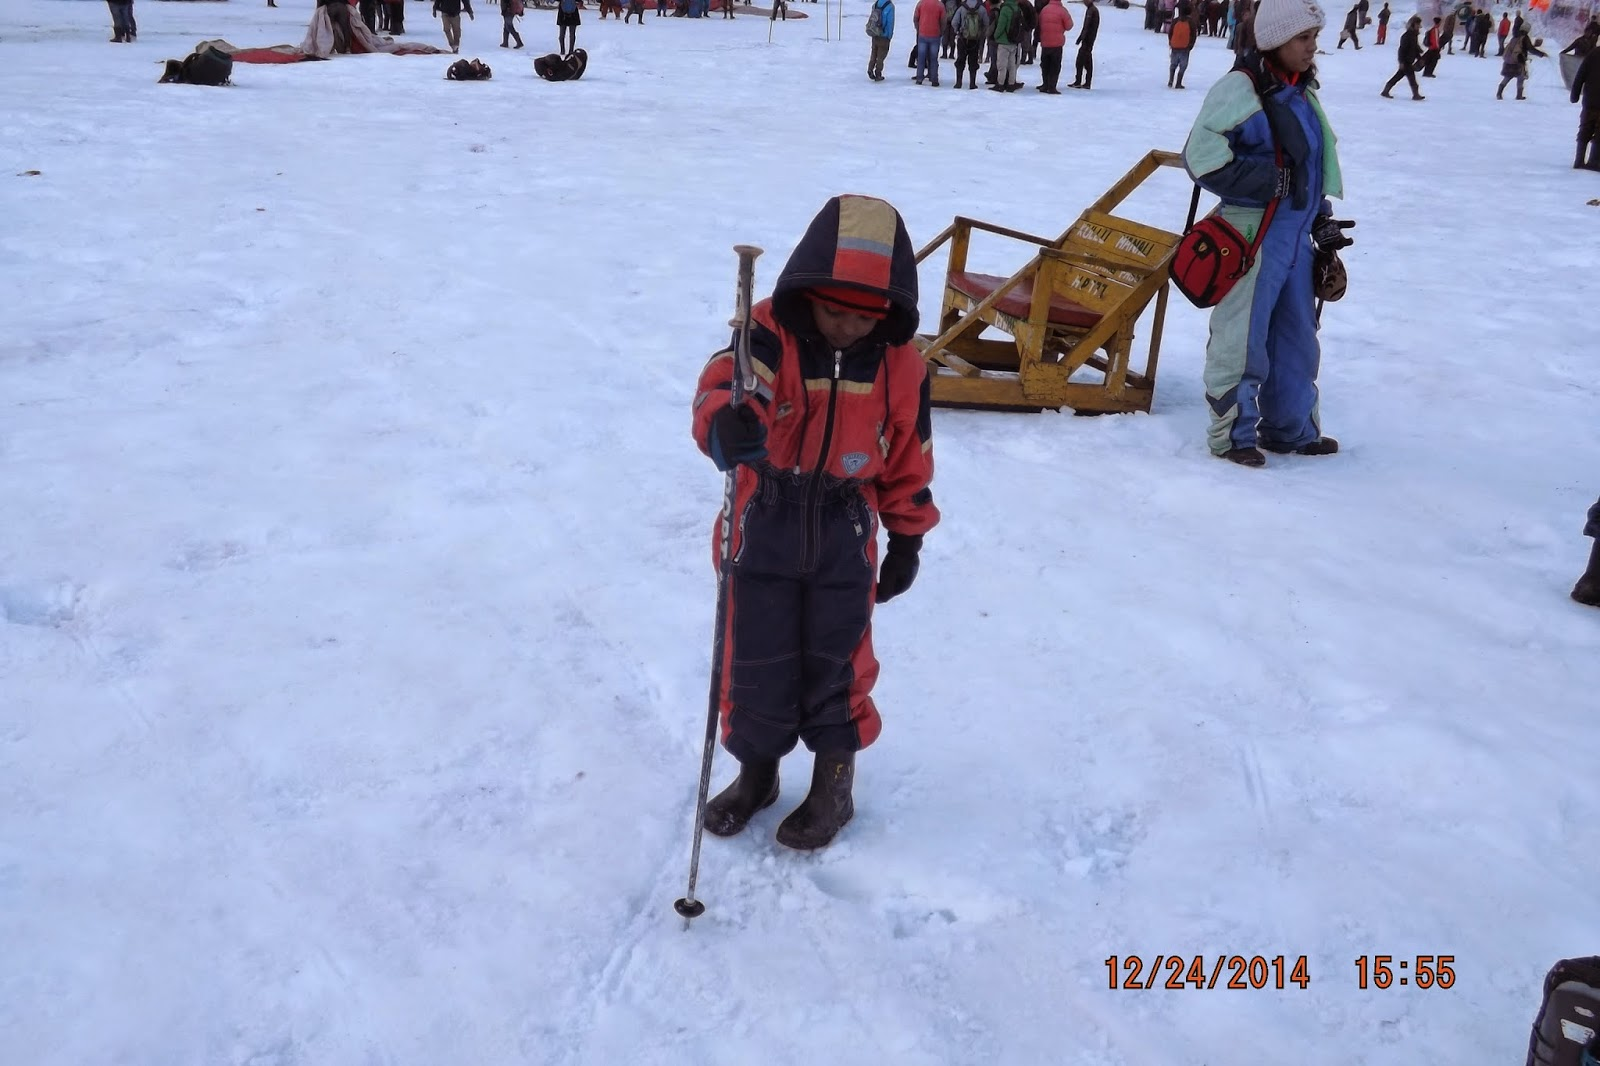 Chandradittya Banik trying his luck in Skiing